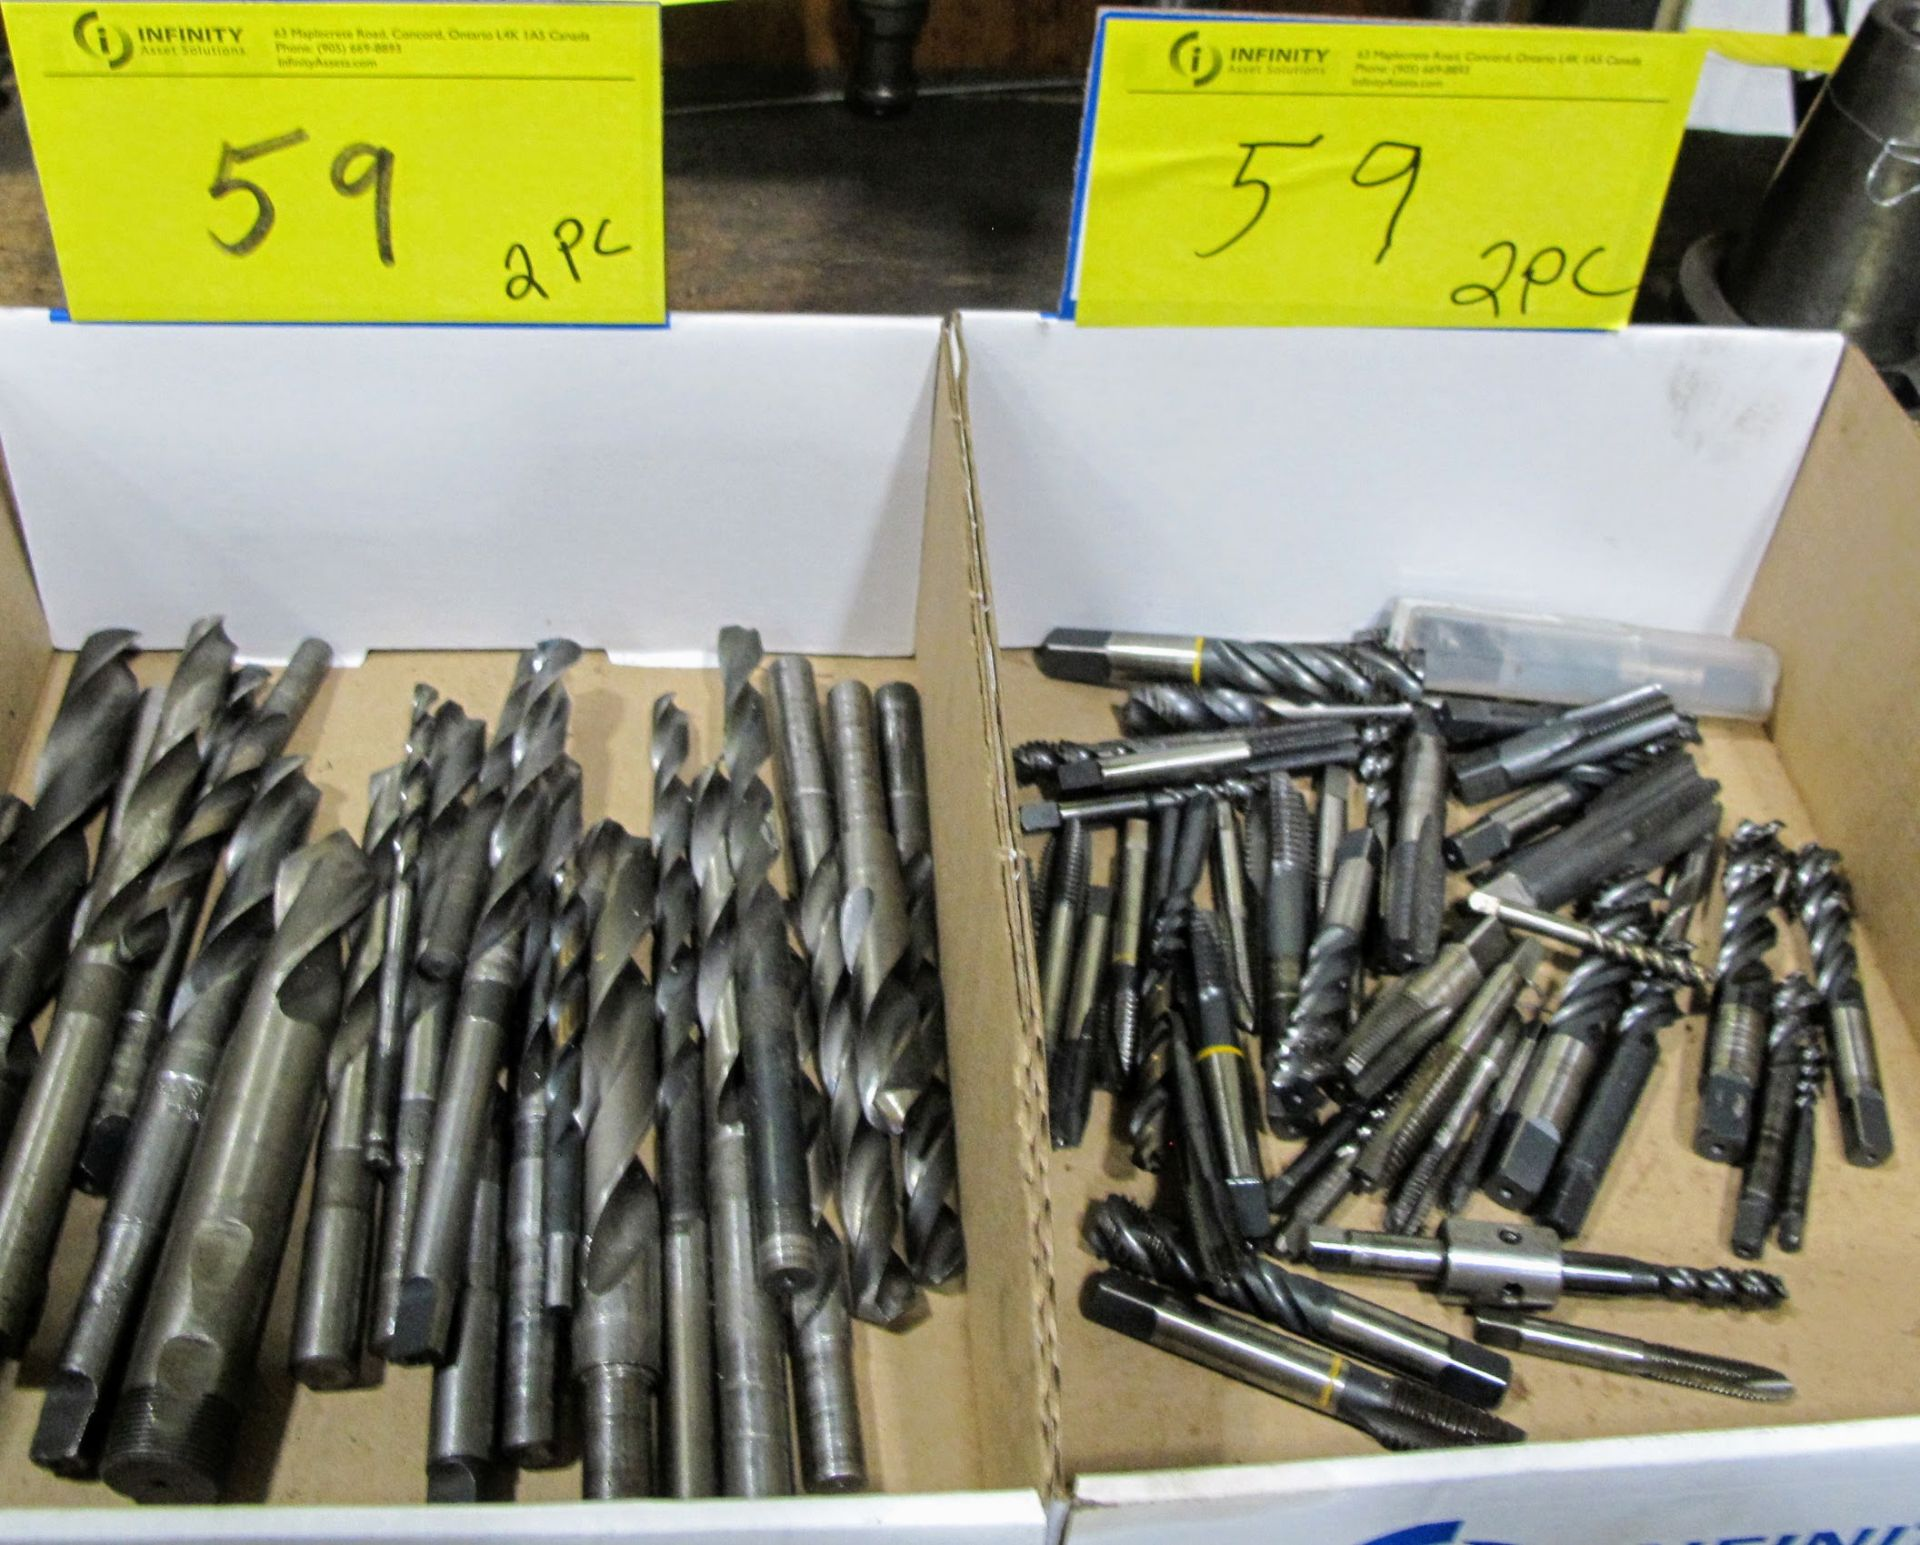 Lot 59 - LOT OF 2 BOXES OF HIGH SPEED DRILLS AND TAPS